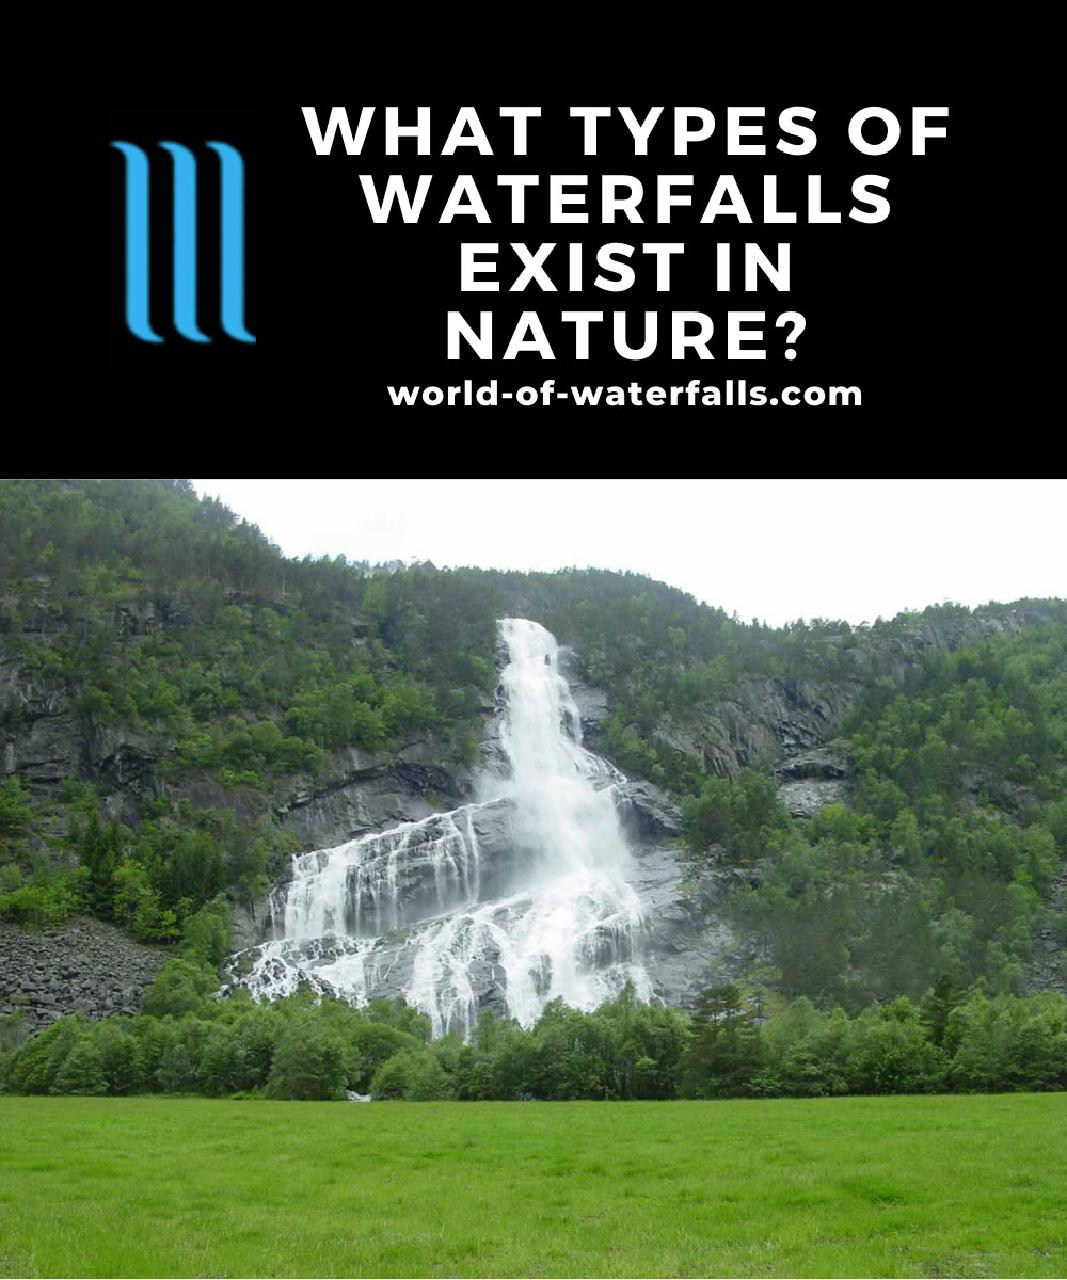 What Types Of Waterfalls Exist In Nature?